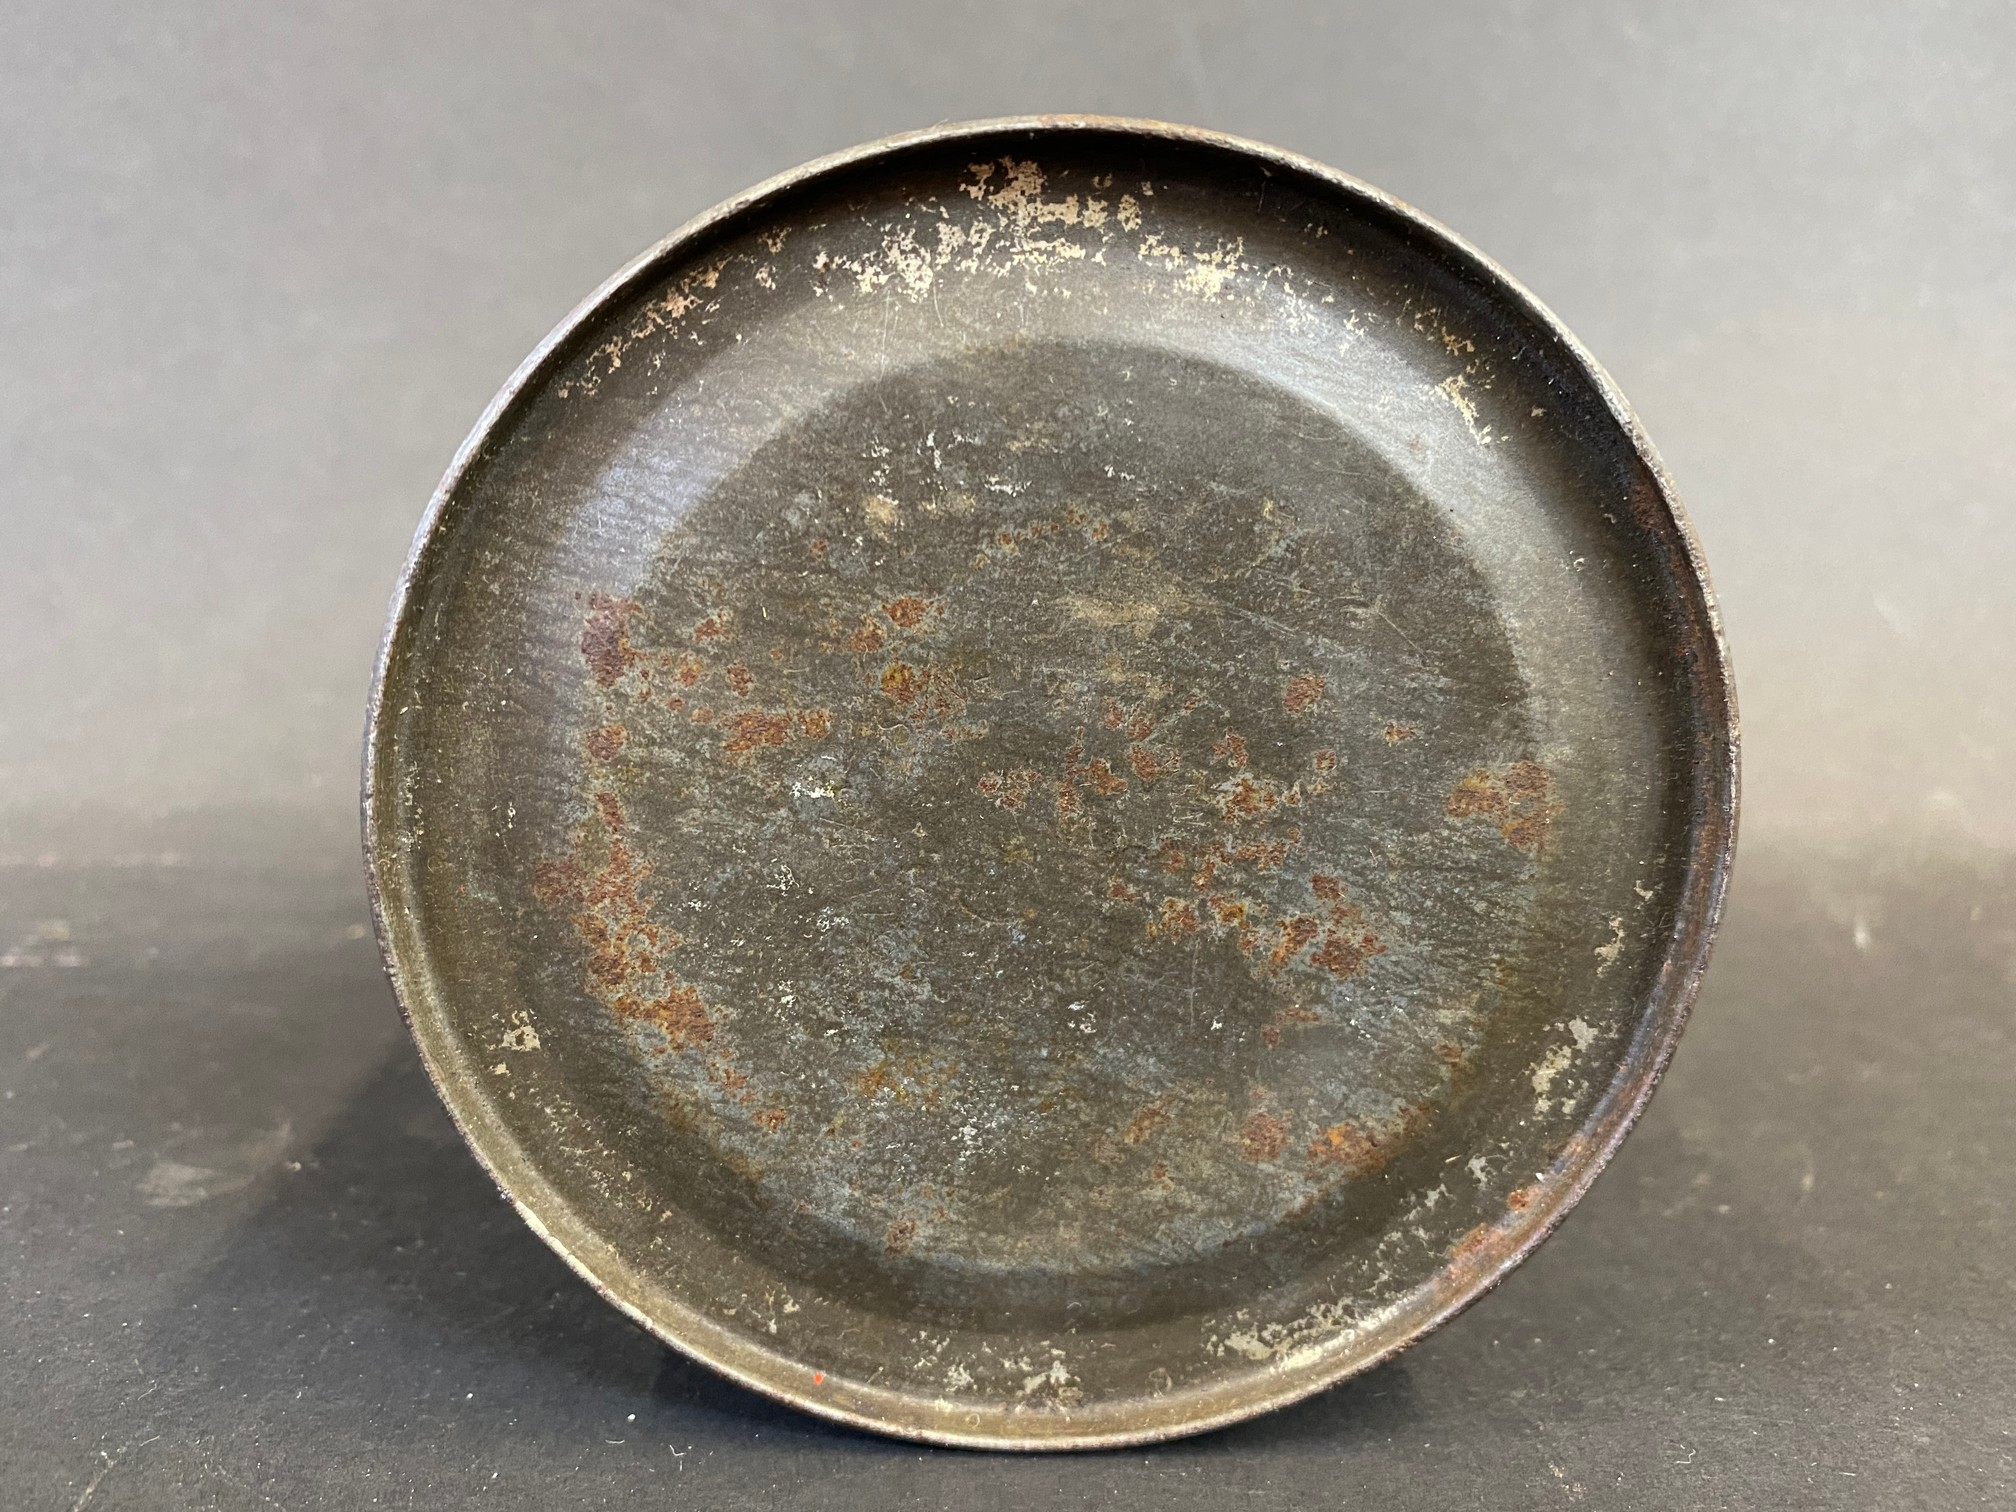 A Duckham's Adcol grease tin. - Image 5 of 5